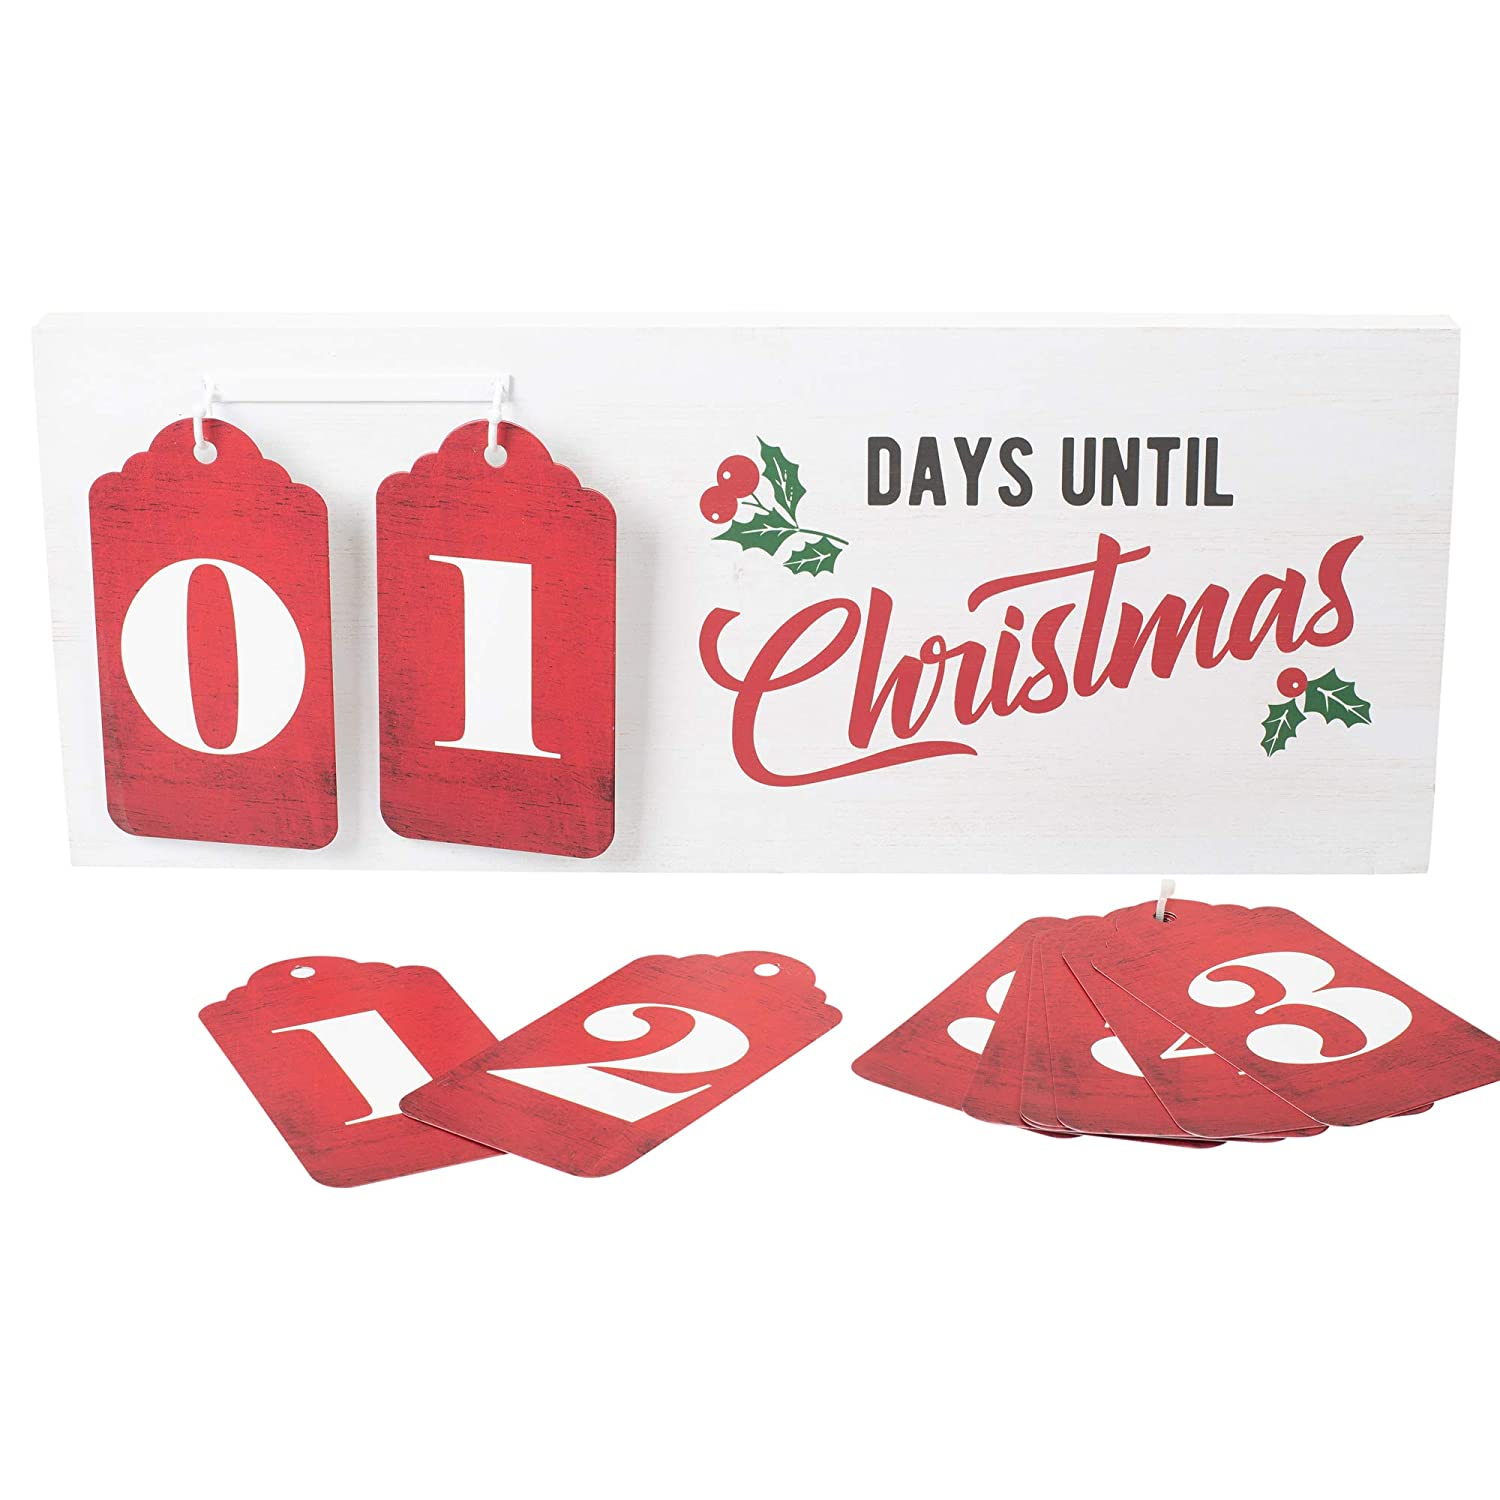 Days Until Christmas Countdown.Amazon Com Days Until Christmas Numbers Red 23 X 10 Mdf